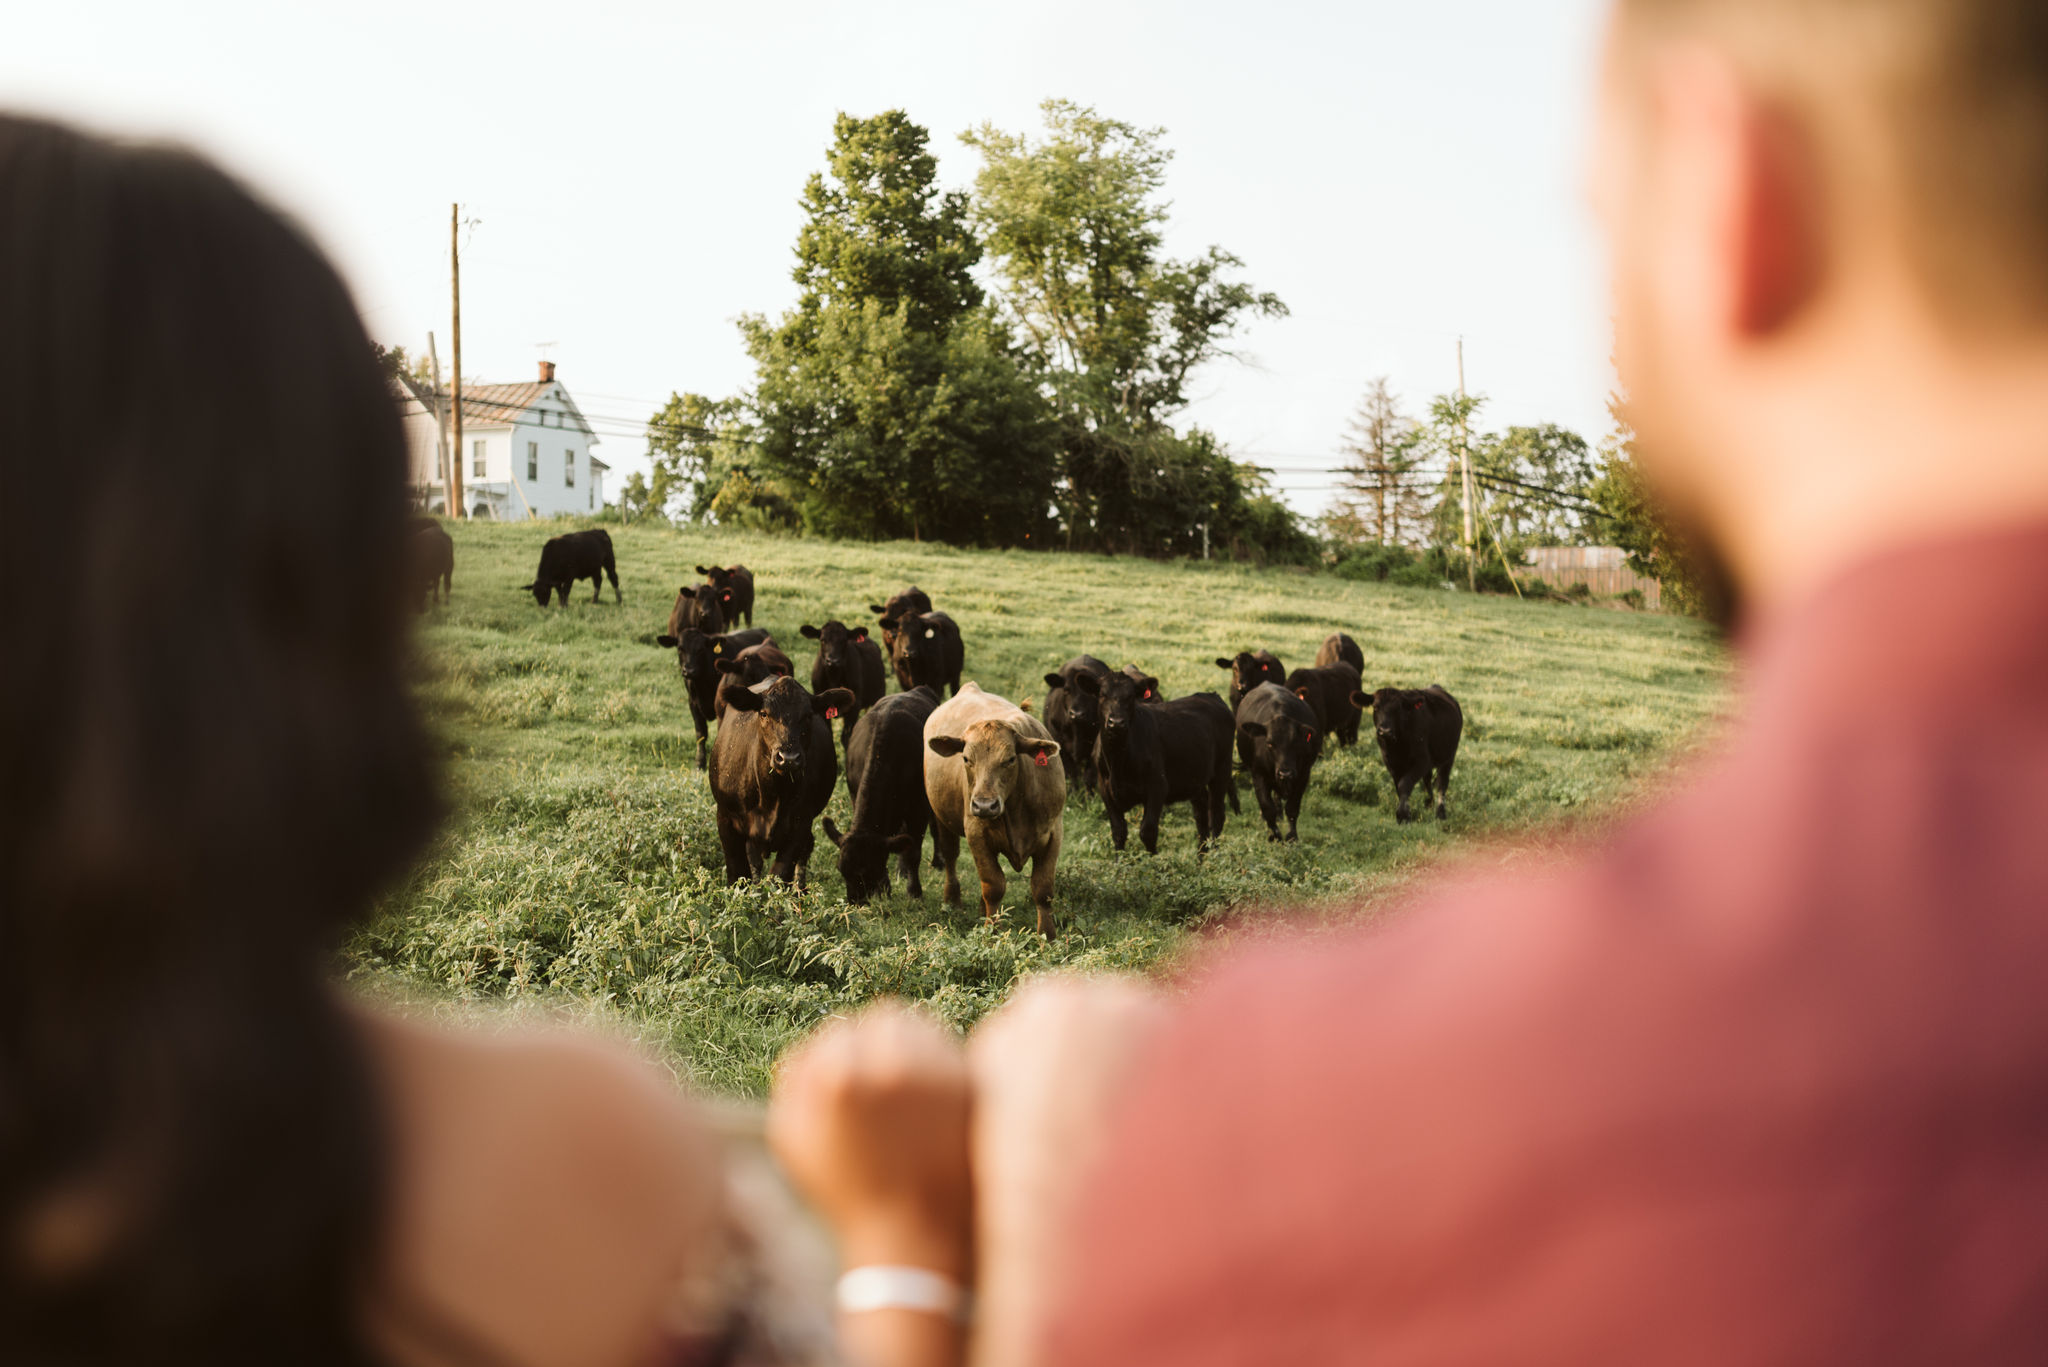 Frederick Maryland, Baltimore Wedding Photographer, Engagement, Bend in the River Farm, Outdoor, Rustic, Nature, Adorable Cows in a Field, Animals